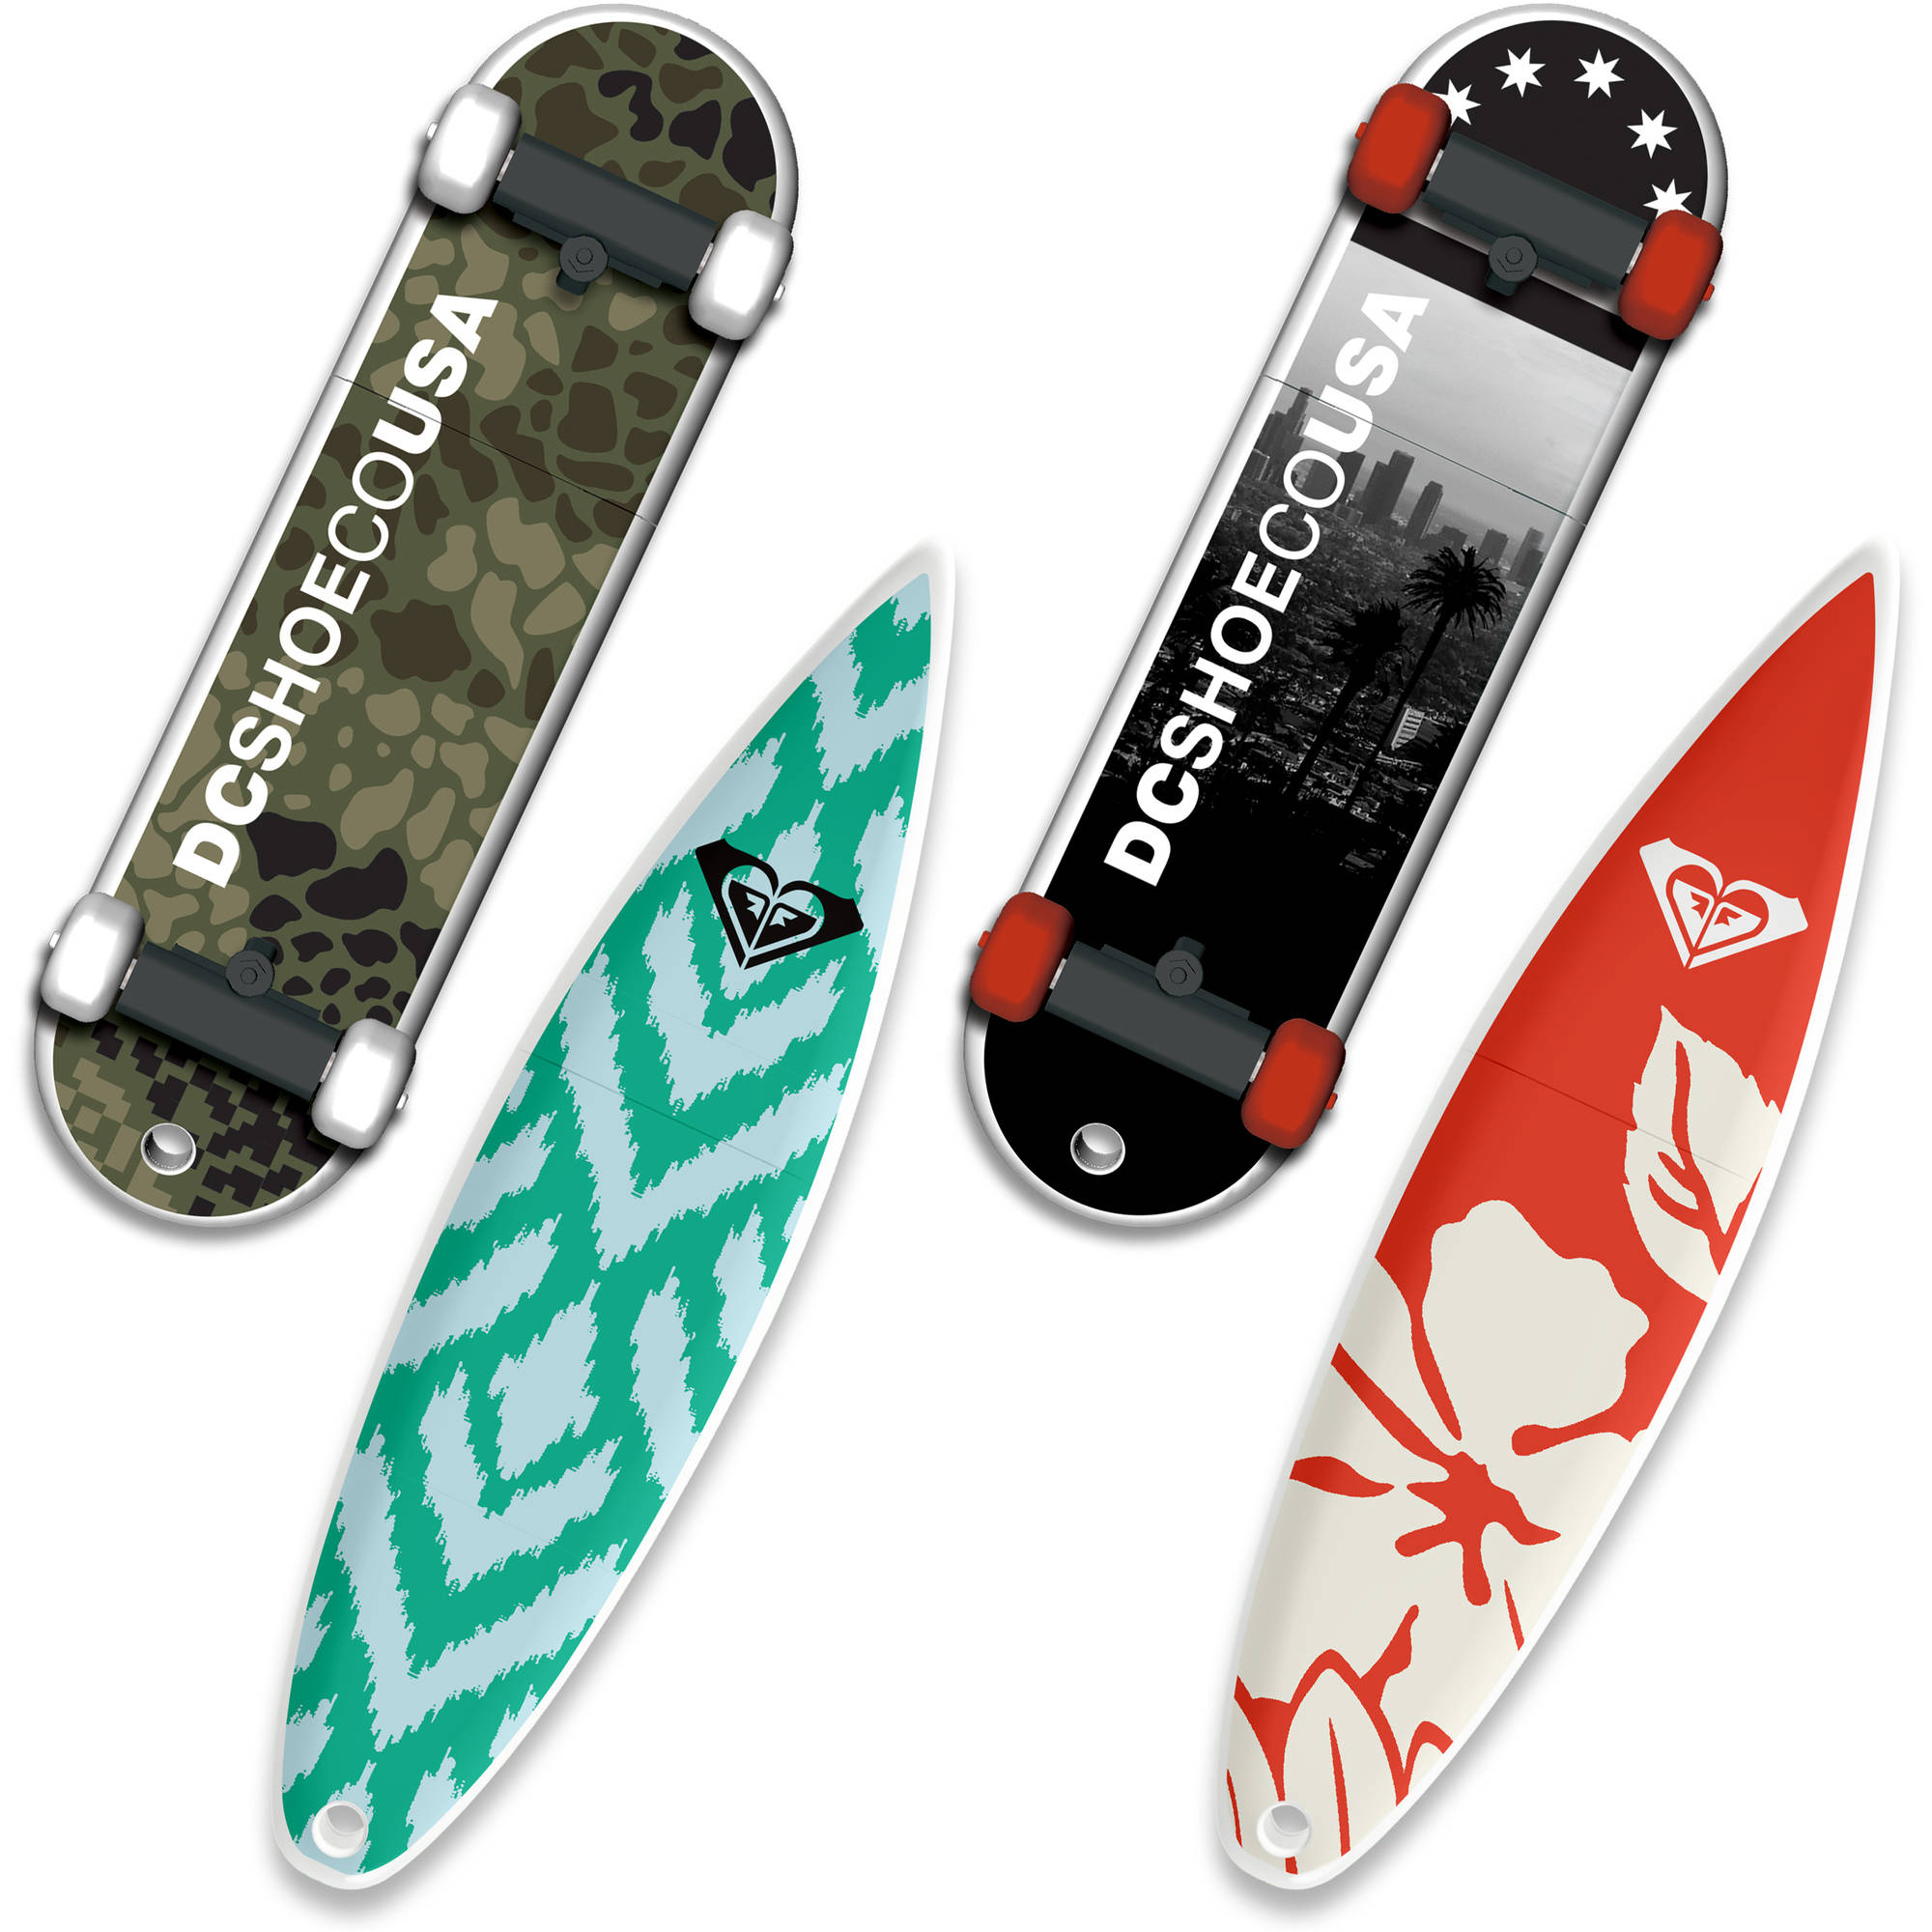 32GB EP ASD USB, DC Shoes SkateDrive and Roxy SurfDrive, 4-Pack